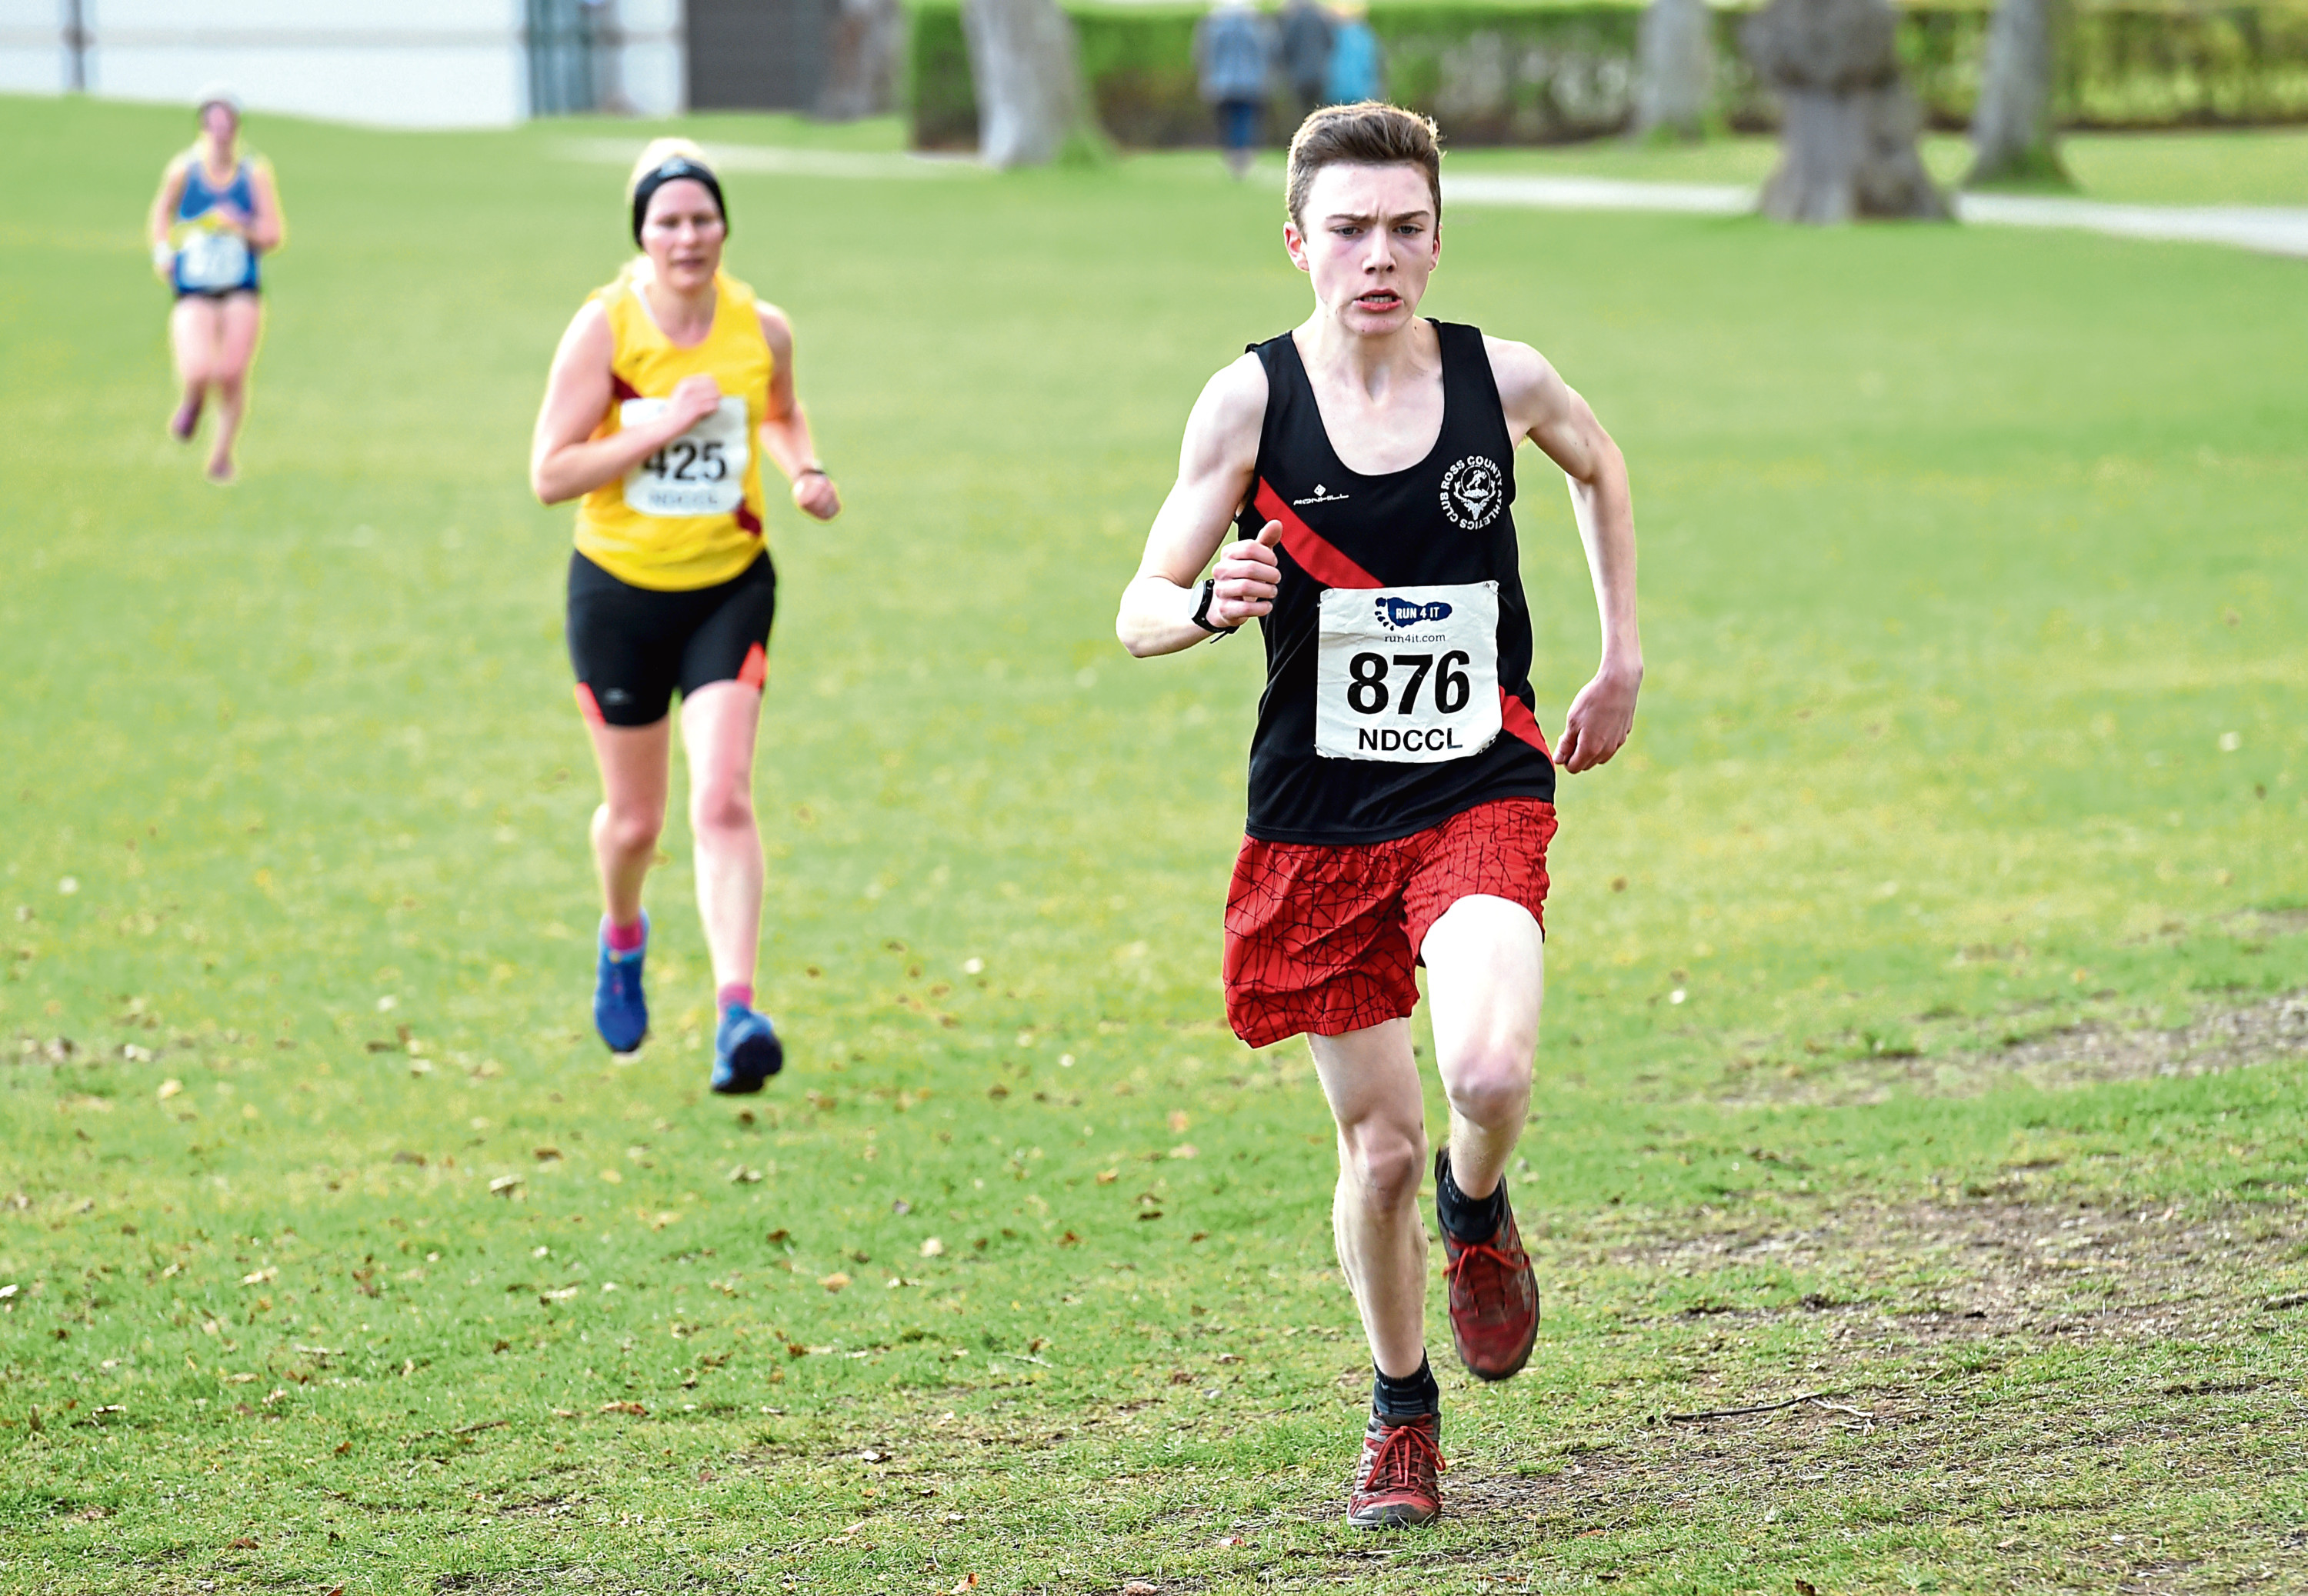 Hamish Hickey crossing the finishing line first competing in the cross country at Grant Park in Forres.